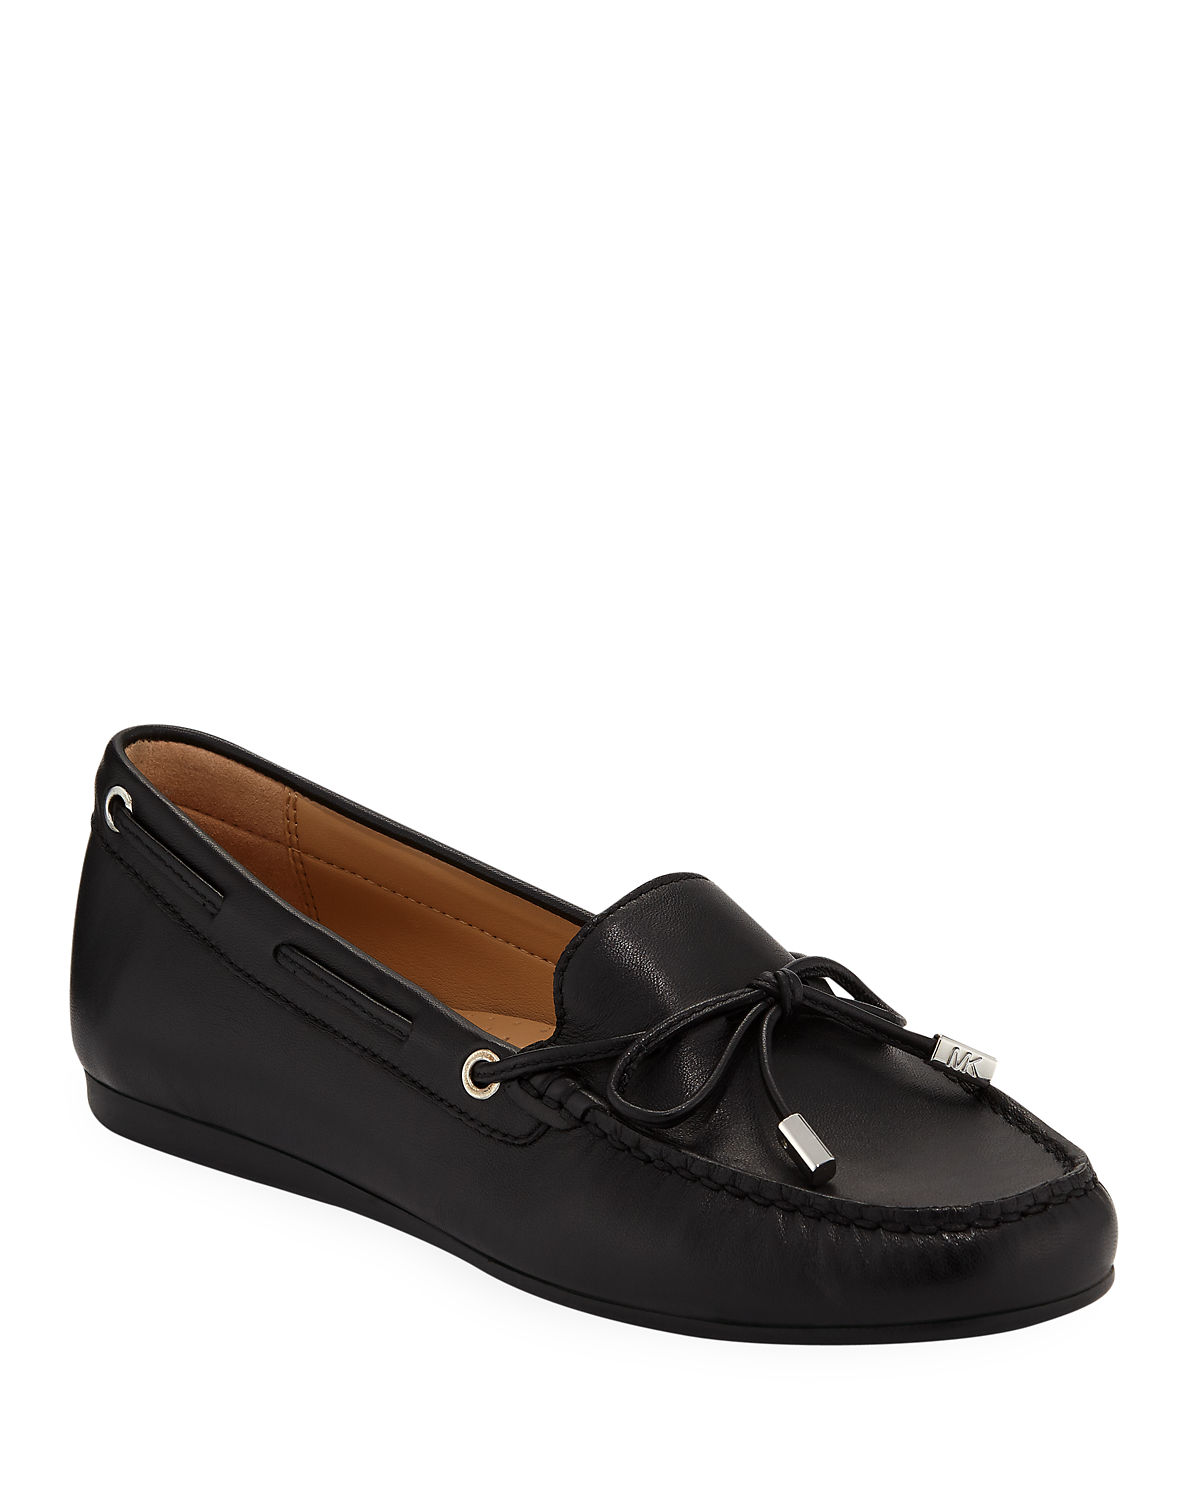 Sutton Napa Leather Moccasins